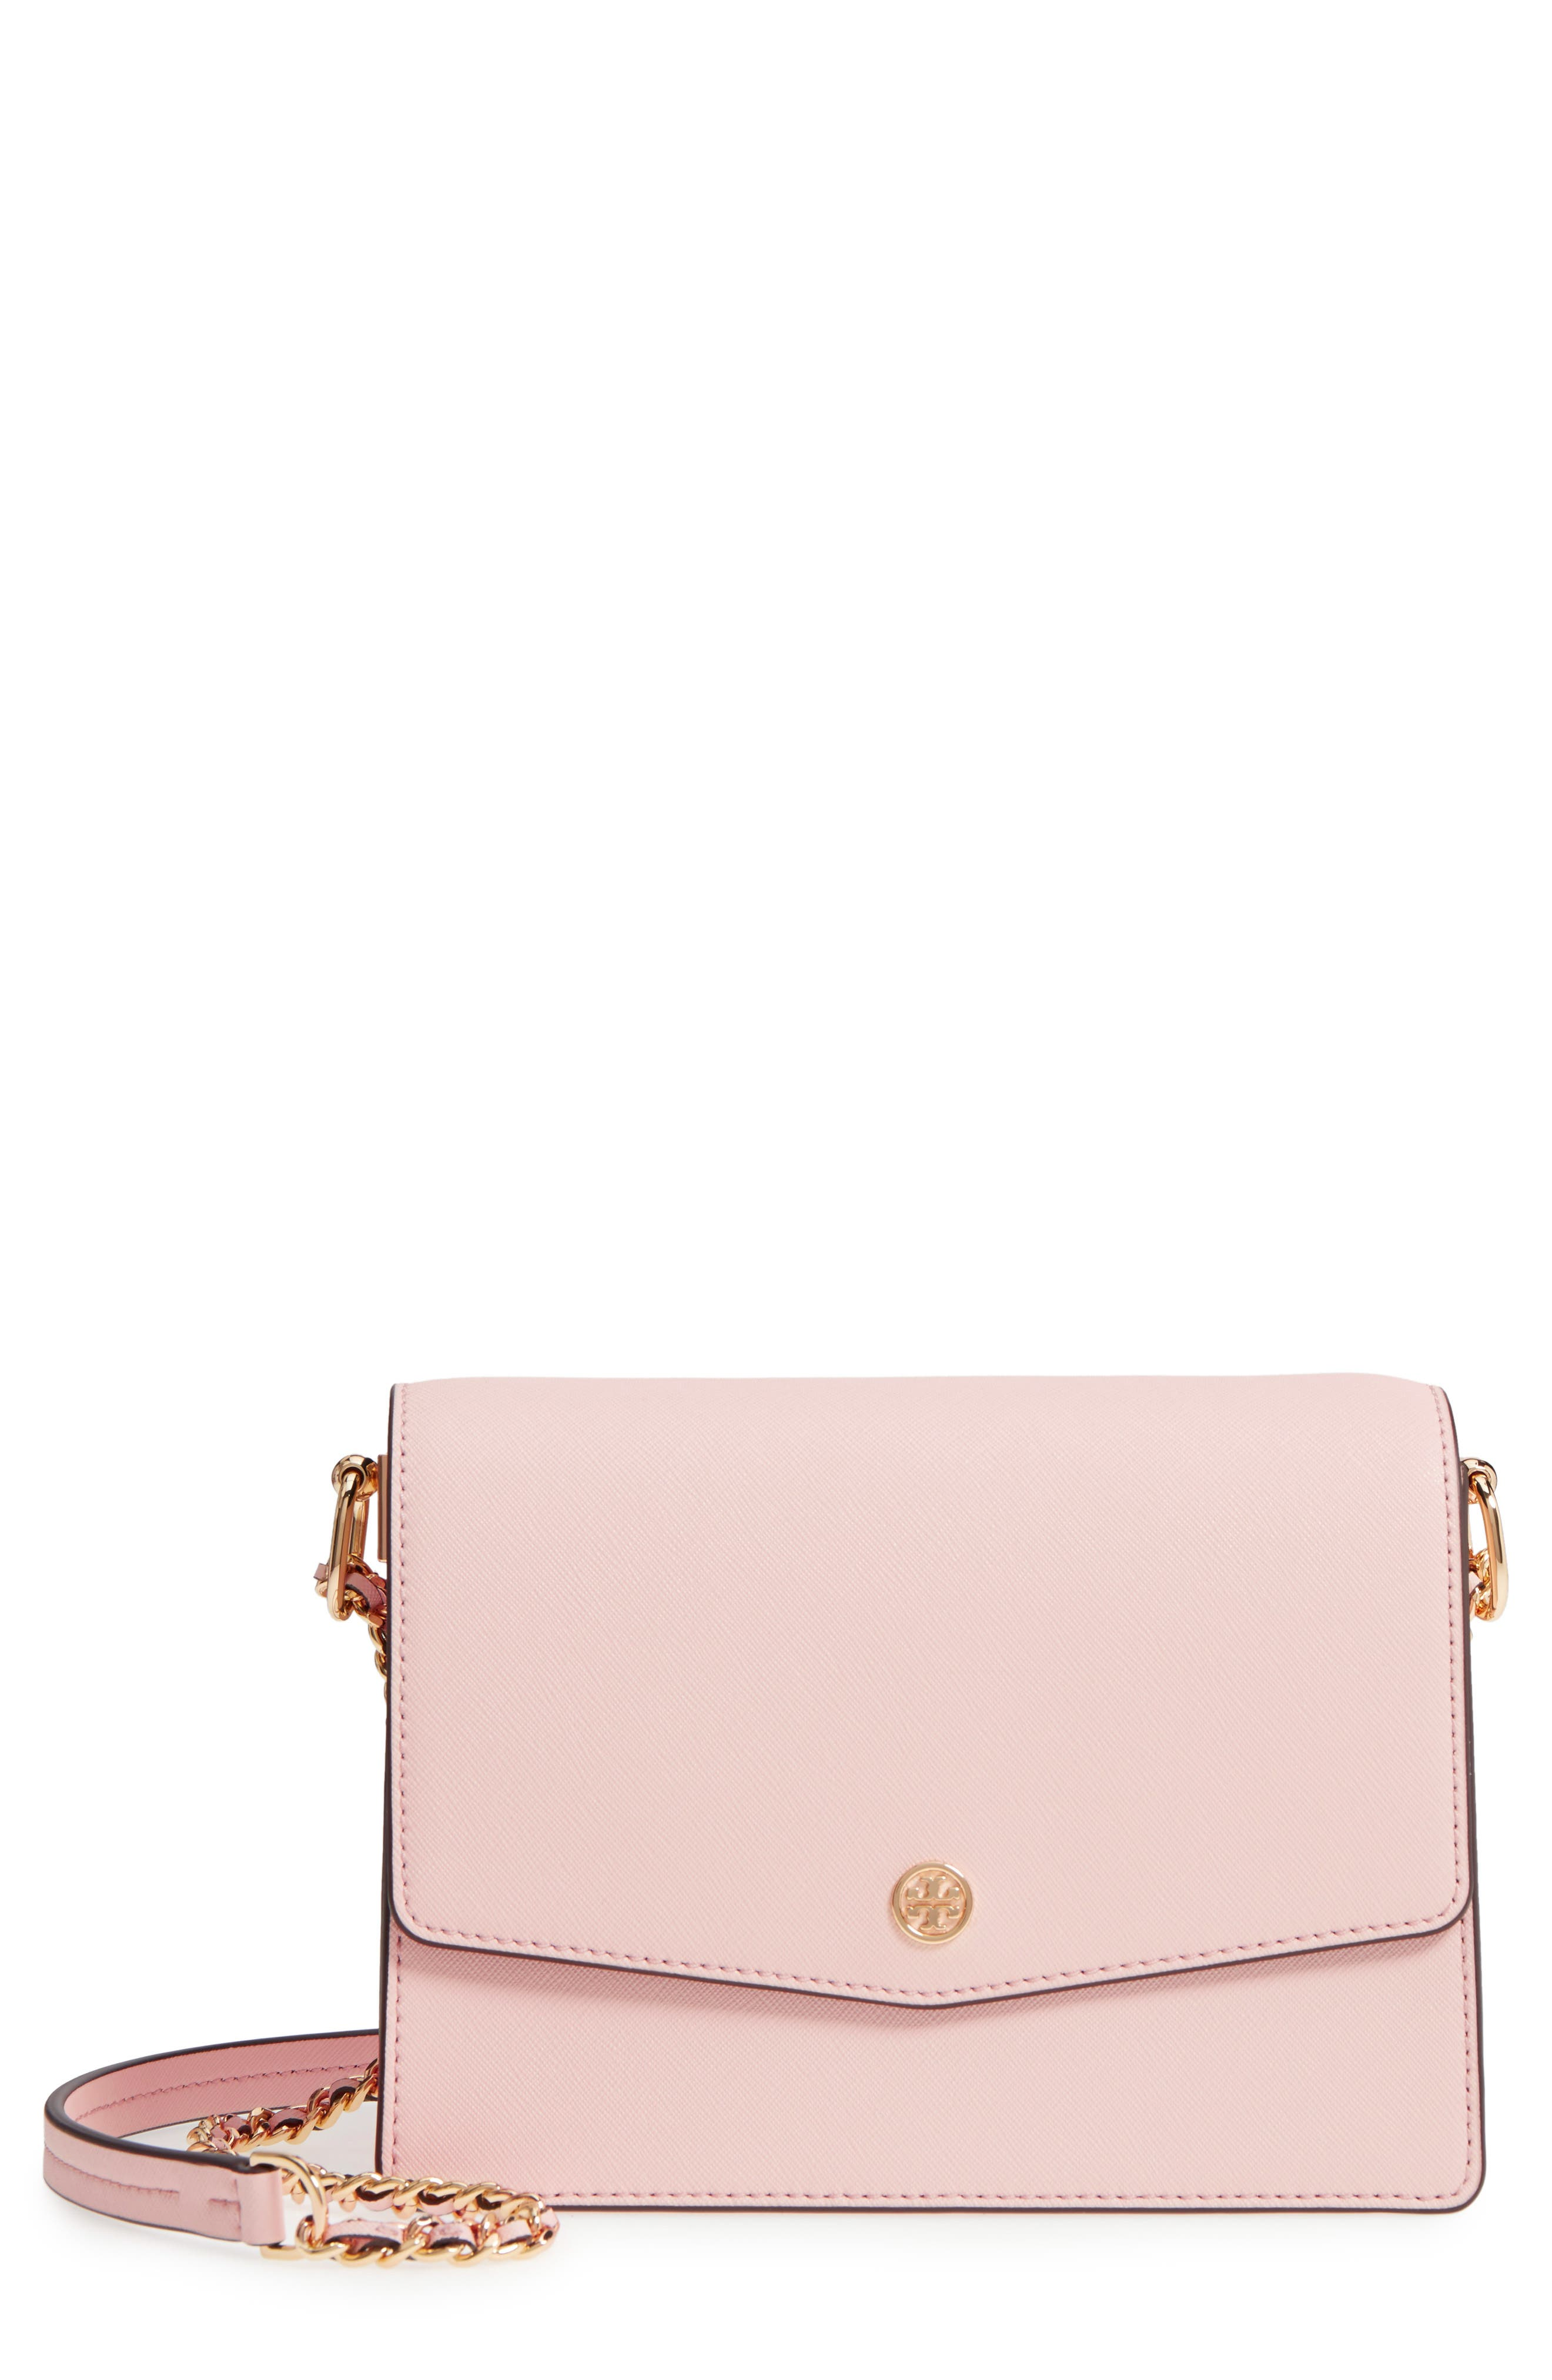 TORY BURCH Robinson Convertible Leather Shoulder Bag, Main, color, 650